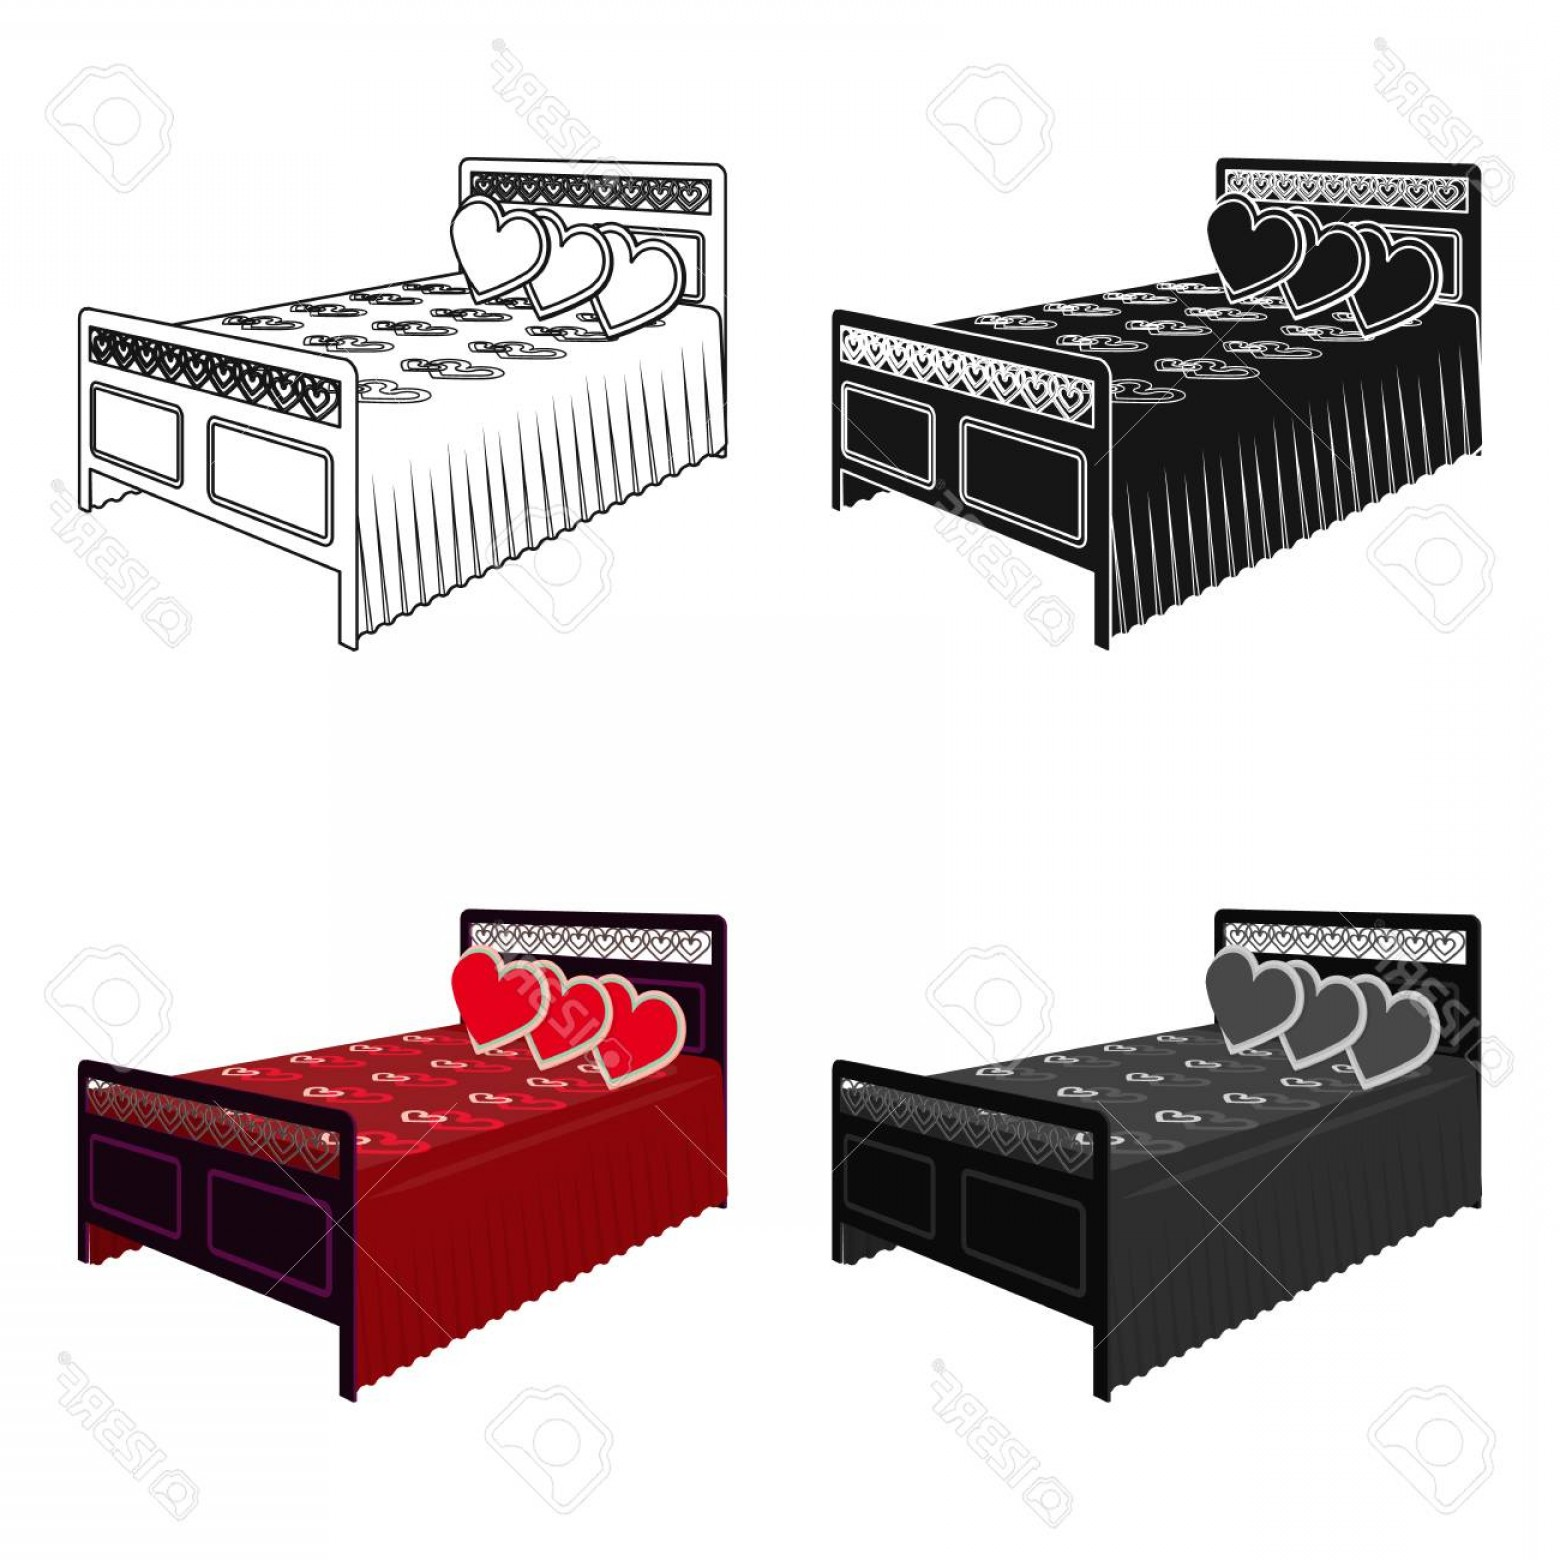 Back Of The Couch Vector: Photostock Vector Beautiful Bedroom With A Wrought Iron Back Bed With Red Blanket And Pillows In The Shape Of A Heart